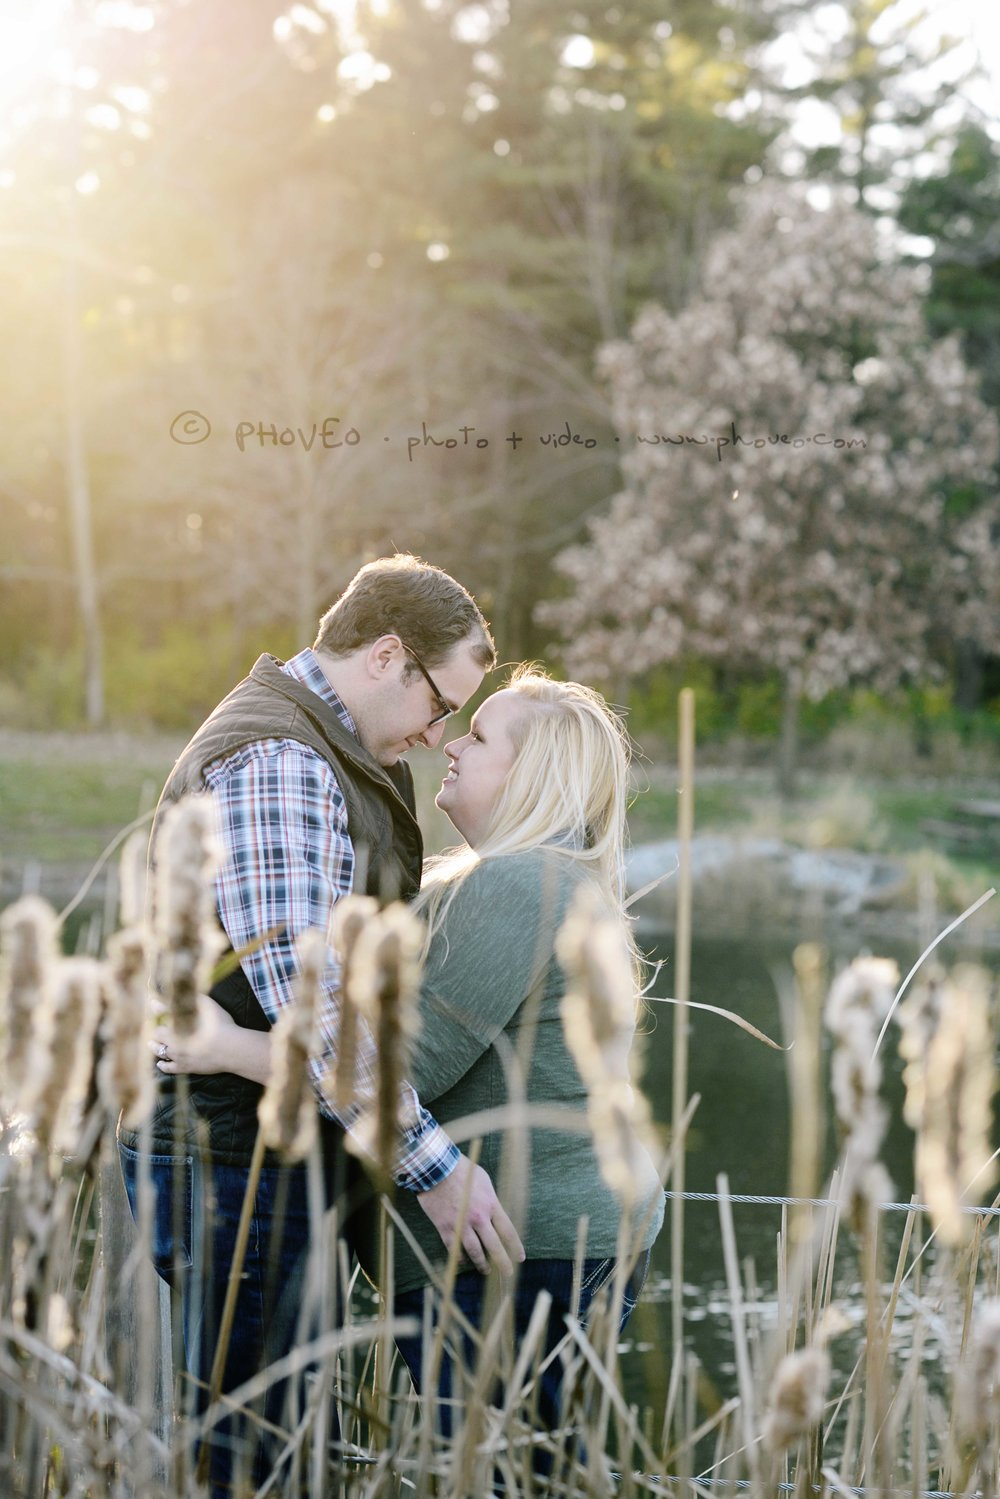 WM_20161113_Amy+Aaron_47.jpg